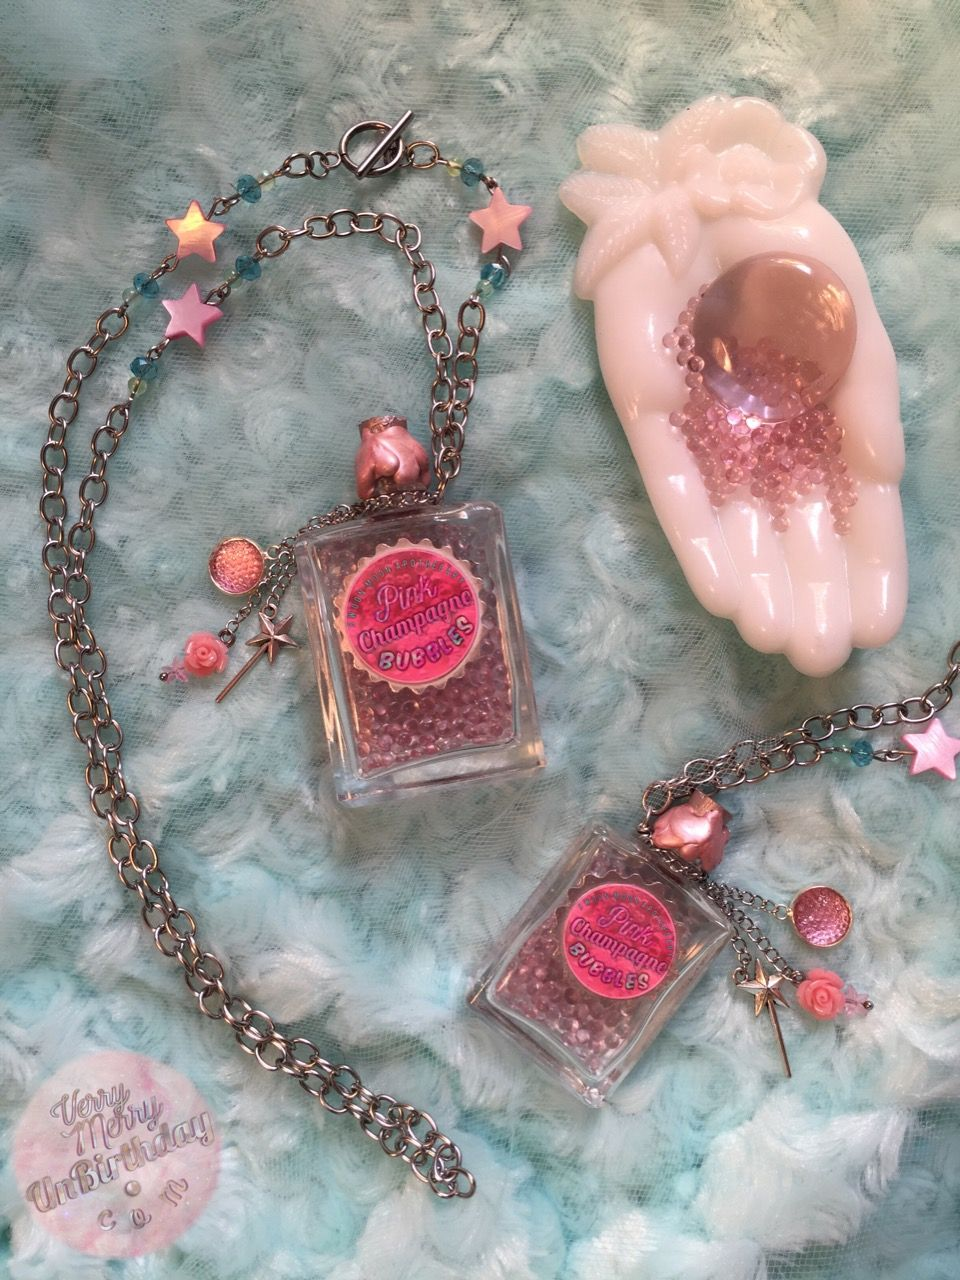 Toasting with pink champagne is one of my frilly fancies! I fashioned these little bottle necklaces to exude a vintage, timeless, feminine celebration of Bubbles & Pink!